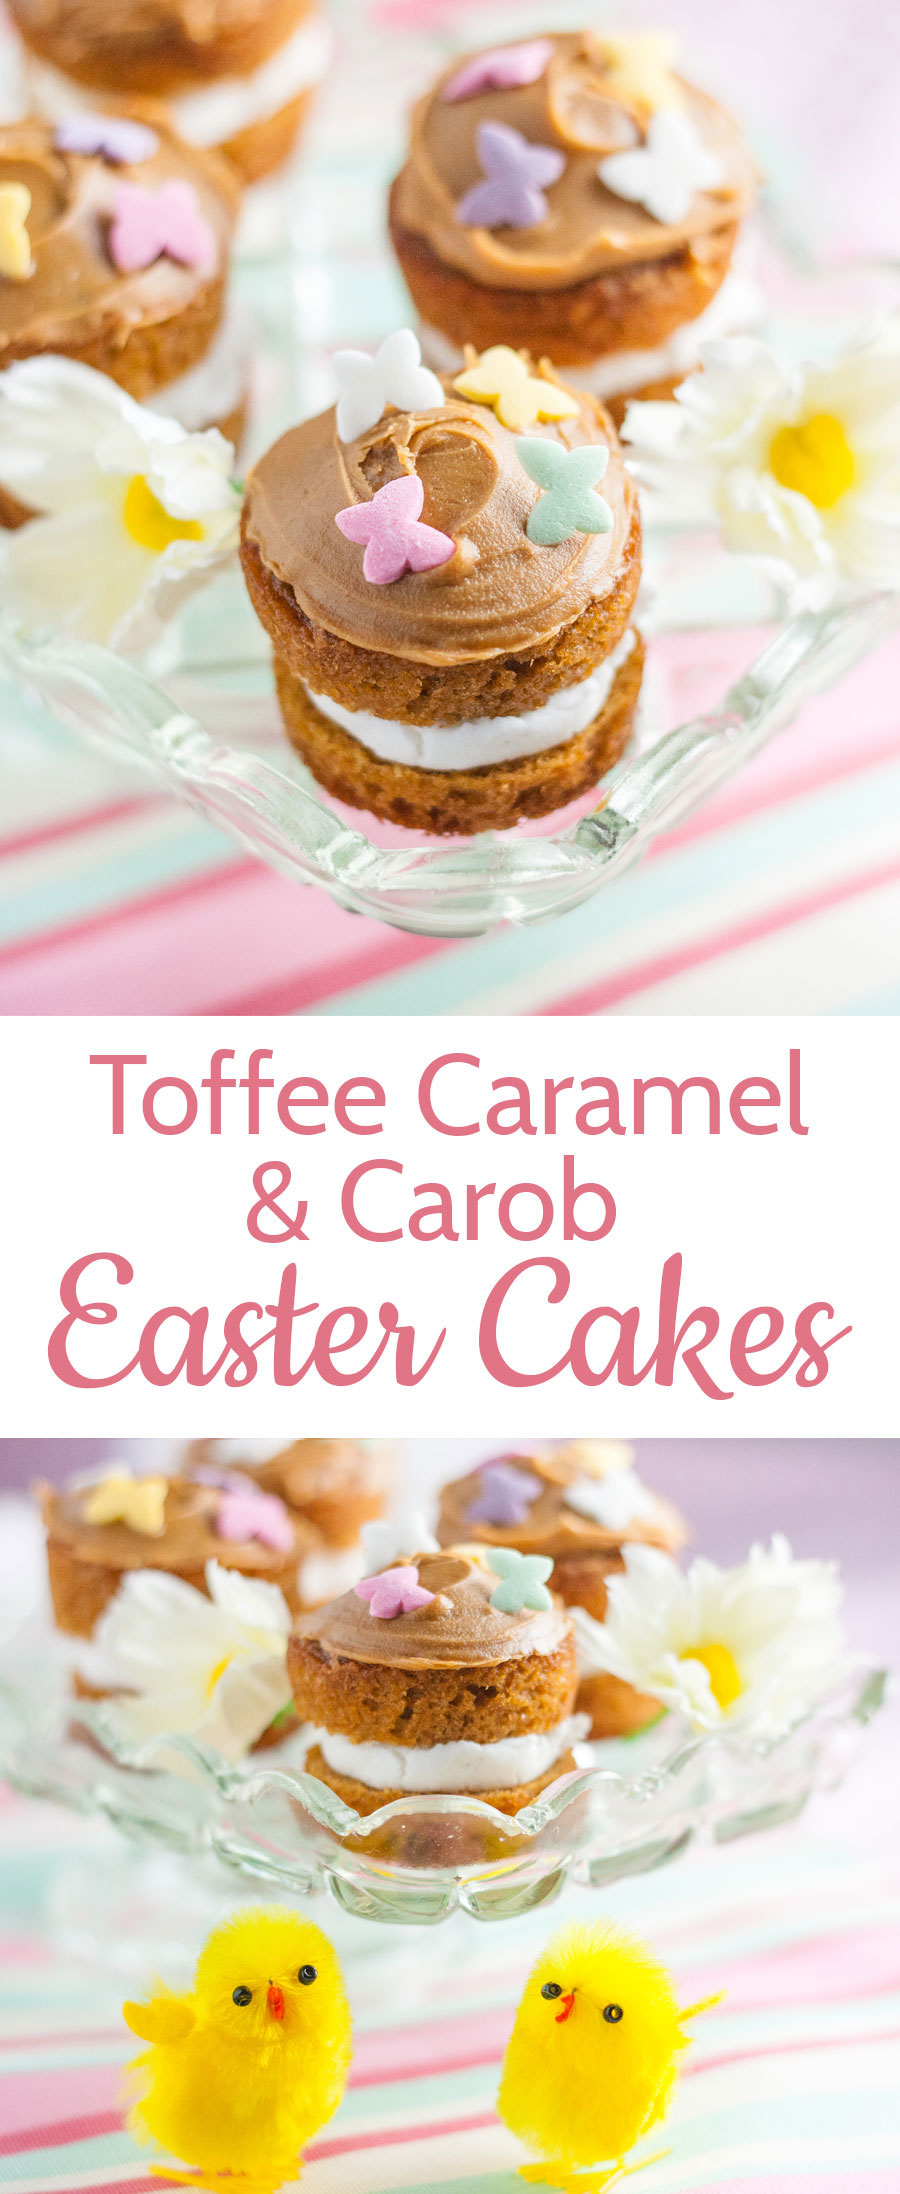 These adorable mini toffee caramel flavoured cakes are perfect for Easter.